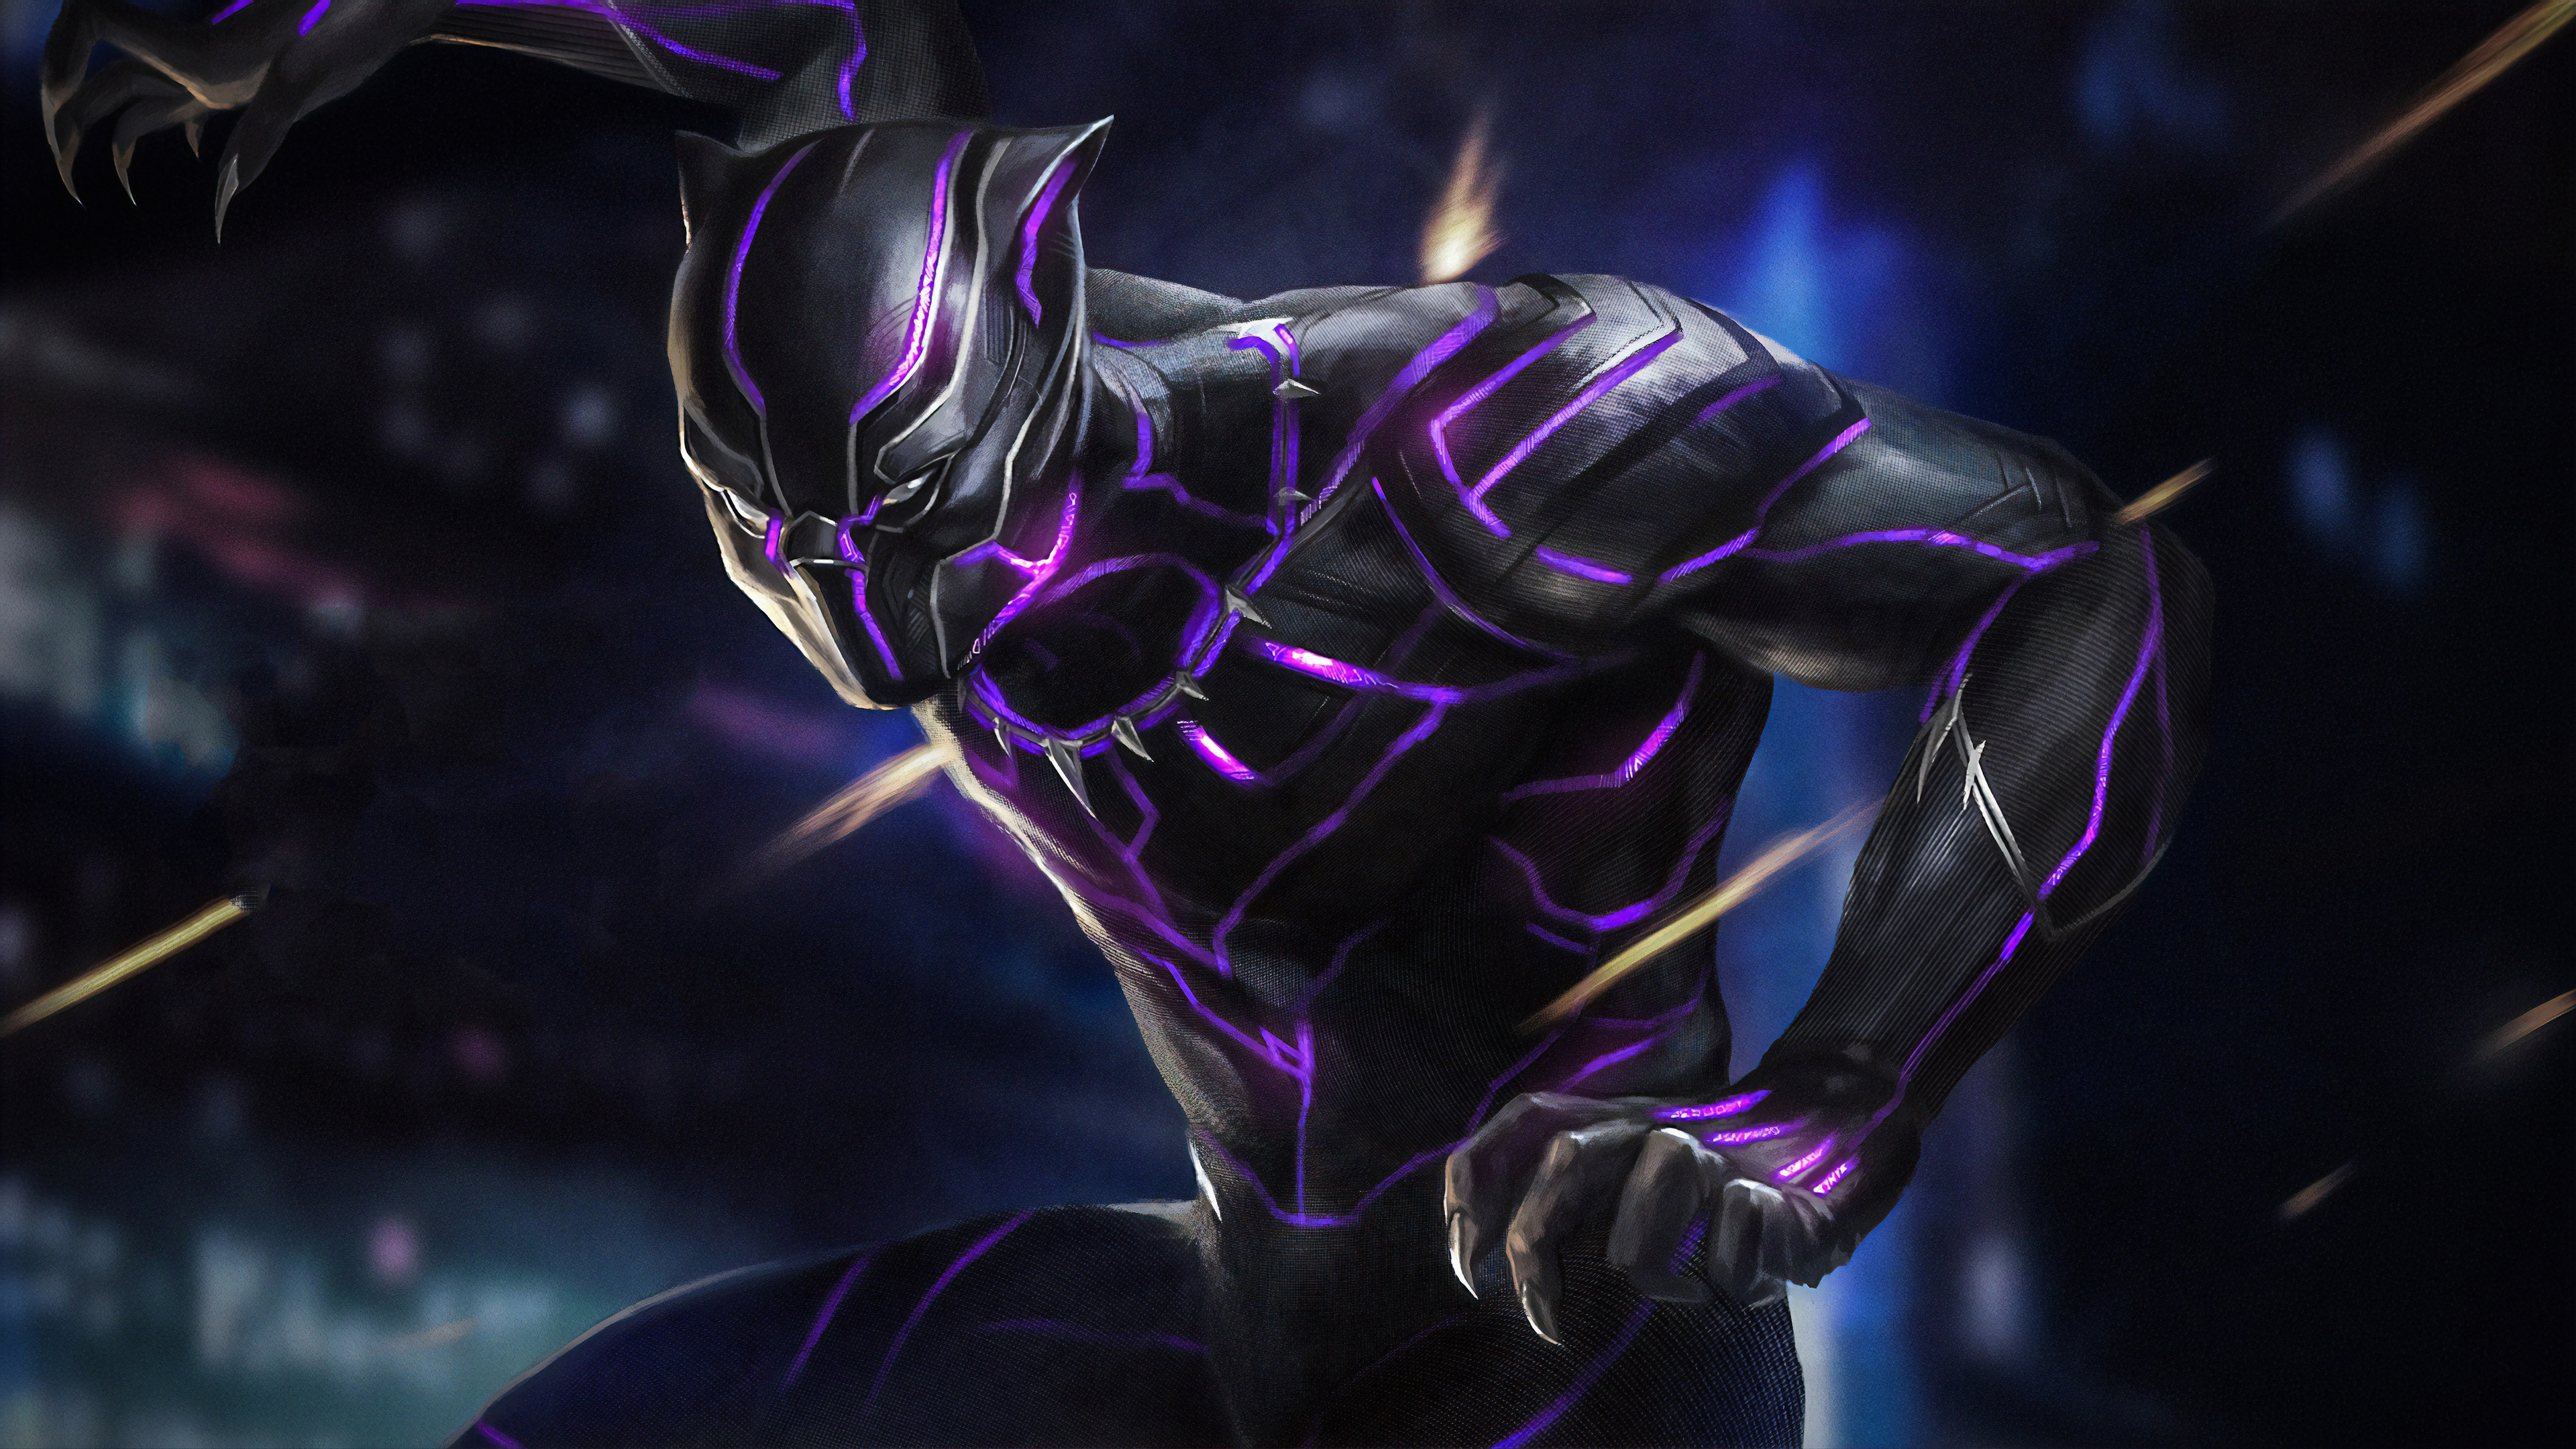 black panther new 1565054216 - Black Panther New - superheroes wallpapers, hd-wallpapers, black panther wallpapers, artwork wallpapers, artstation wallpapers, 4k-wallpapers